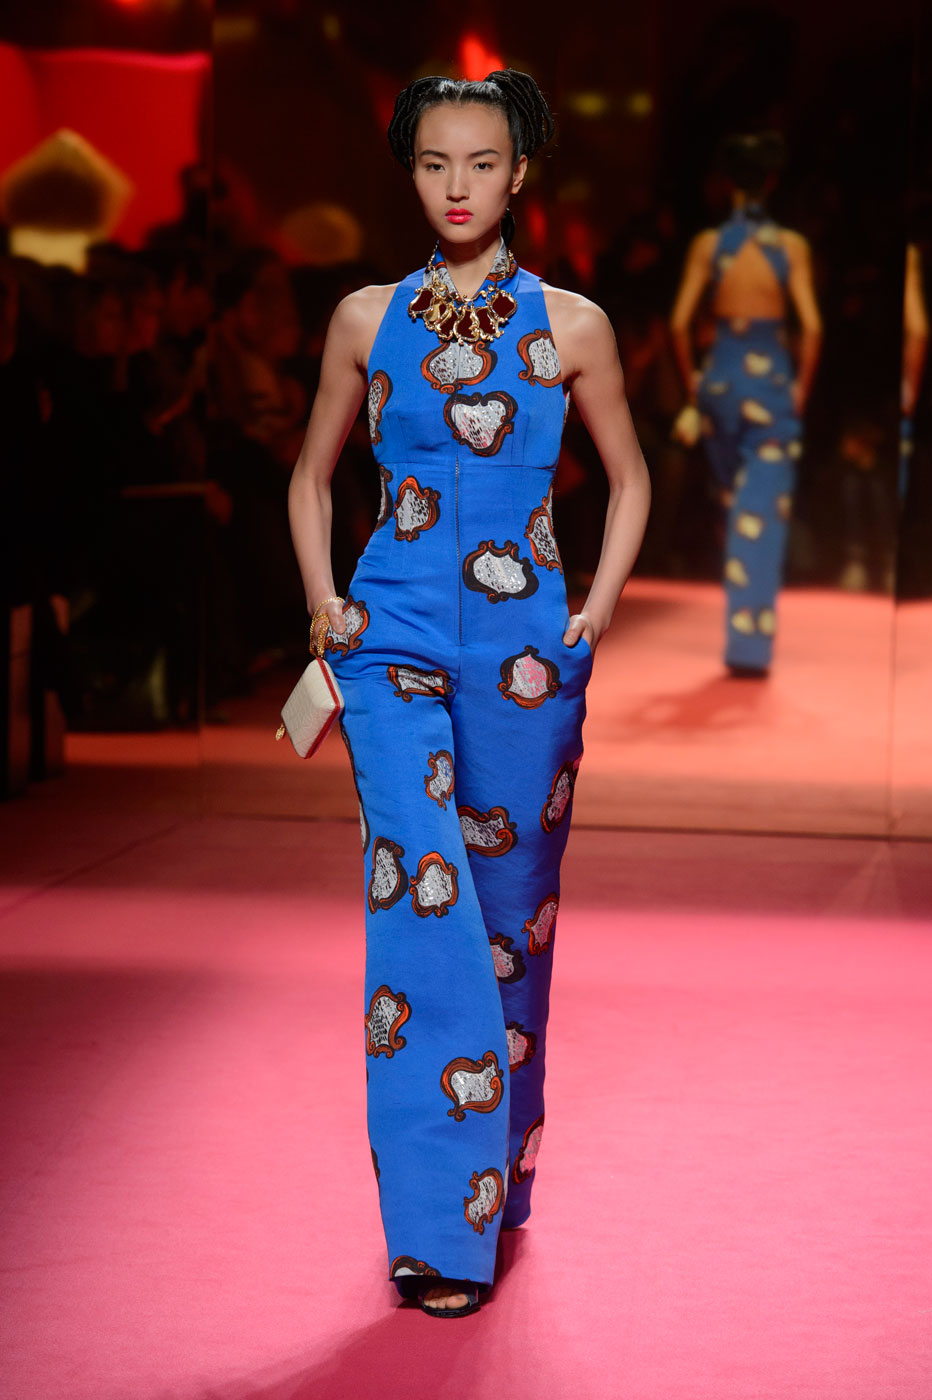 Schiaparelli-fashion-runway-show-haute-couture-paris-spring-summer-2015-the-impression-34